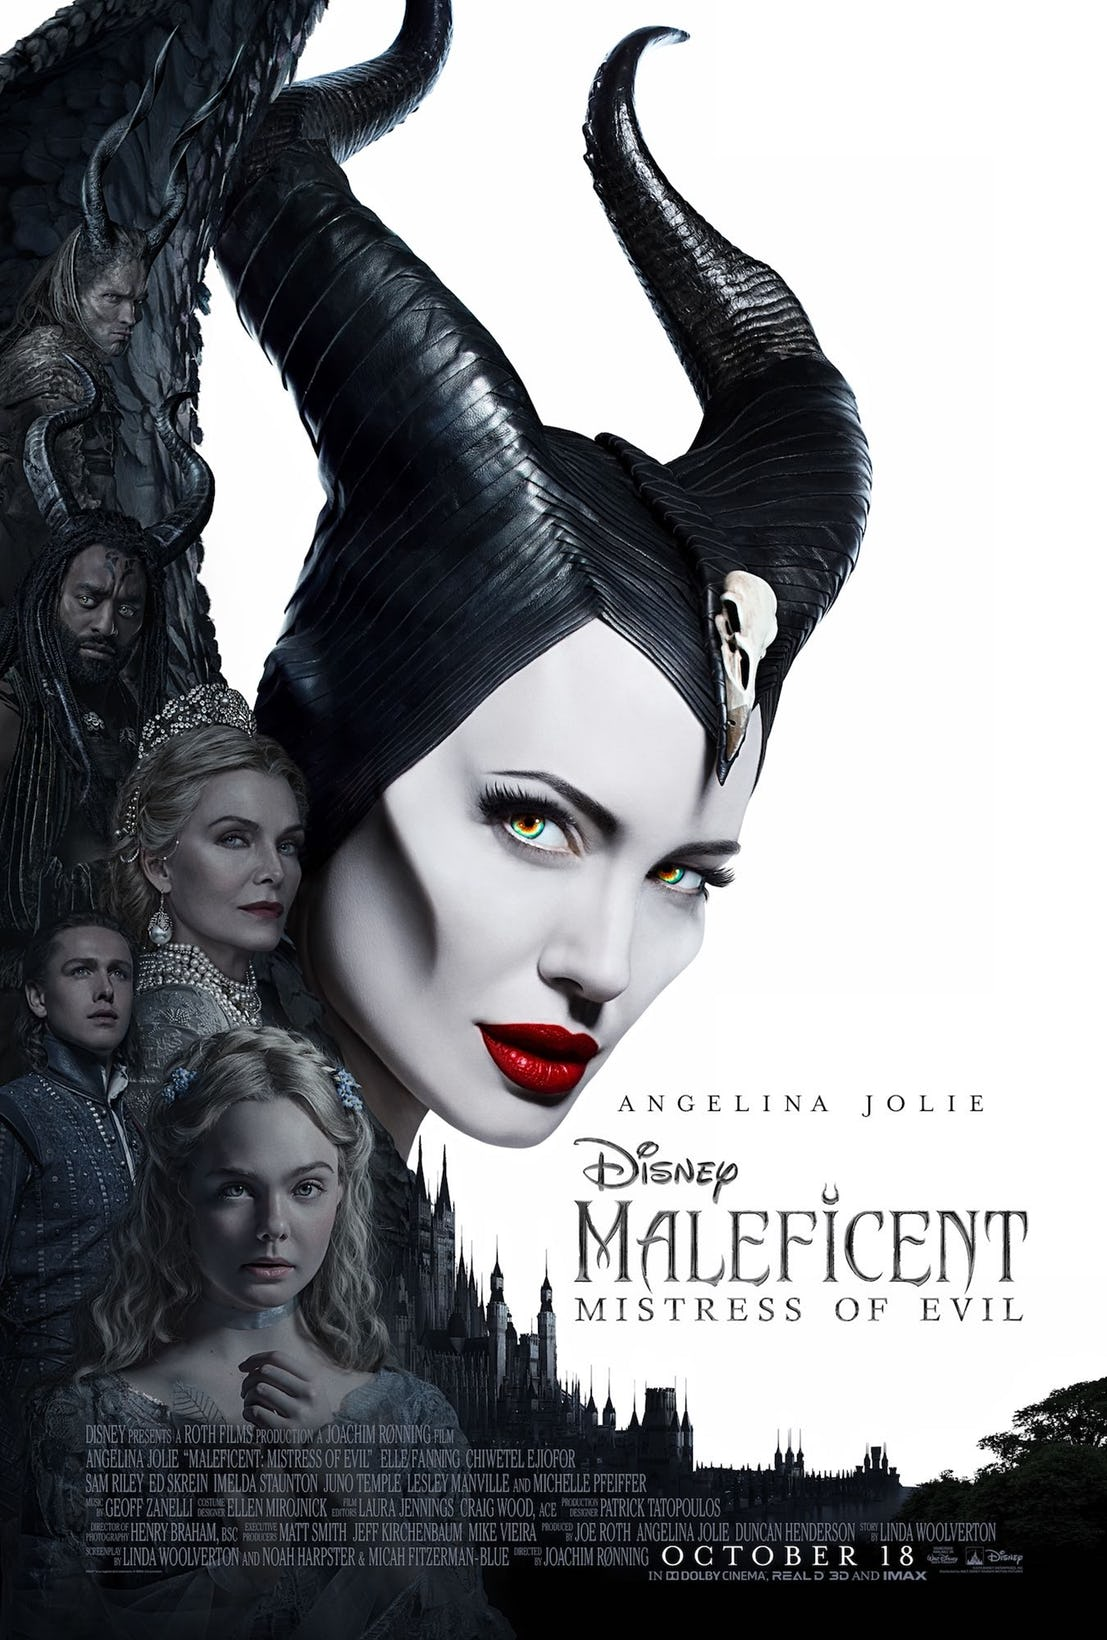 Maleficent Mistress of Evil Poster with the cast of the movie showing